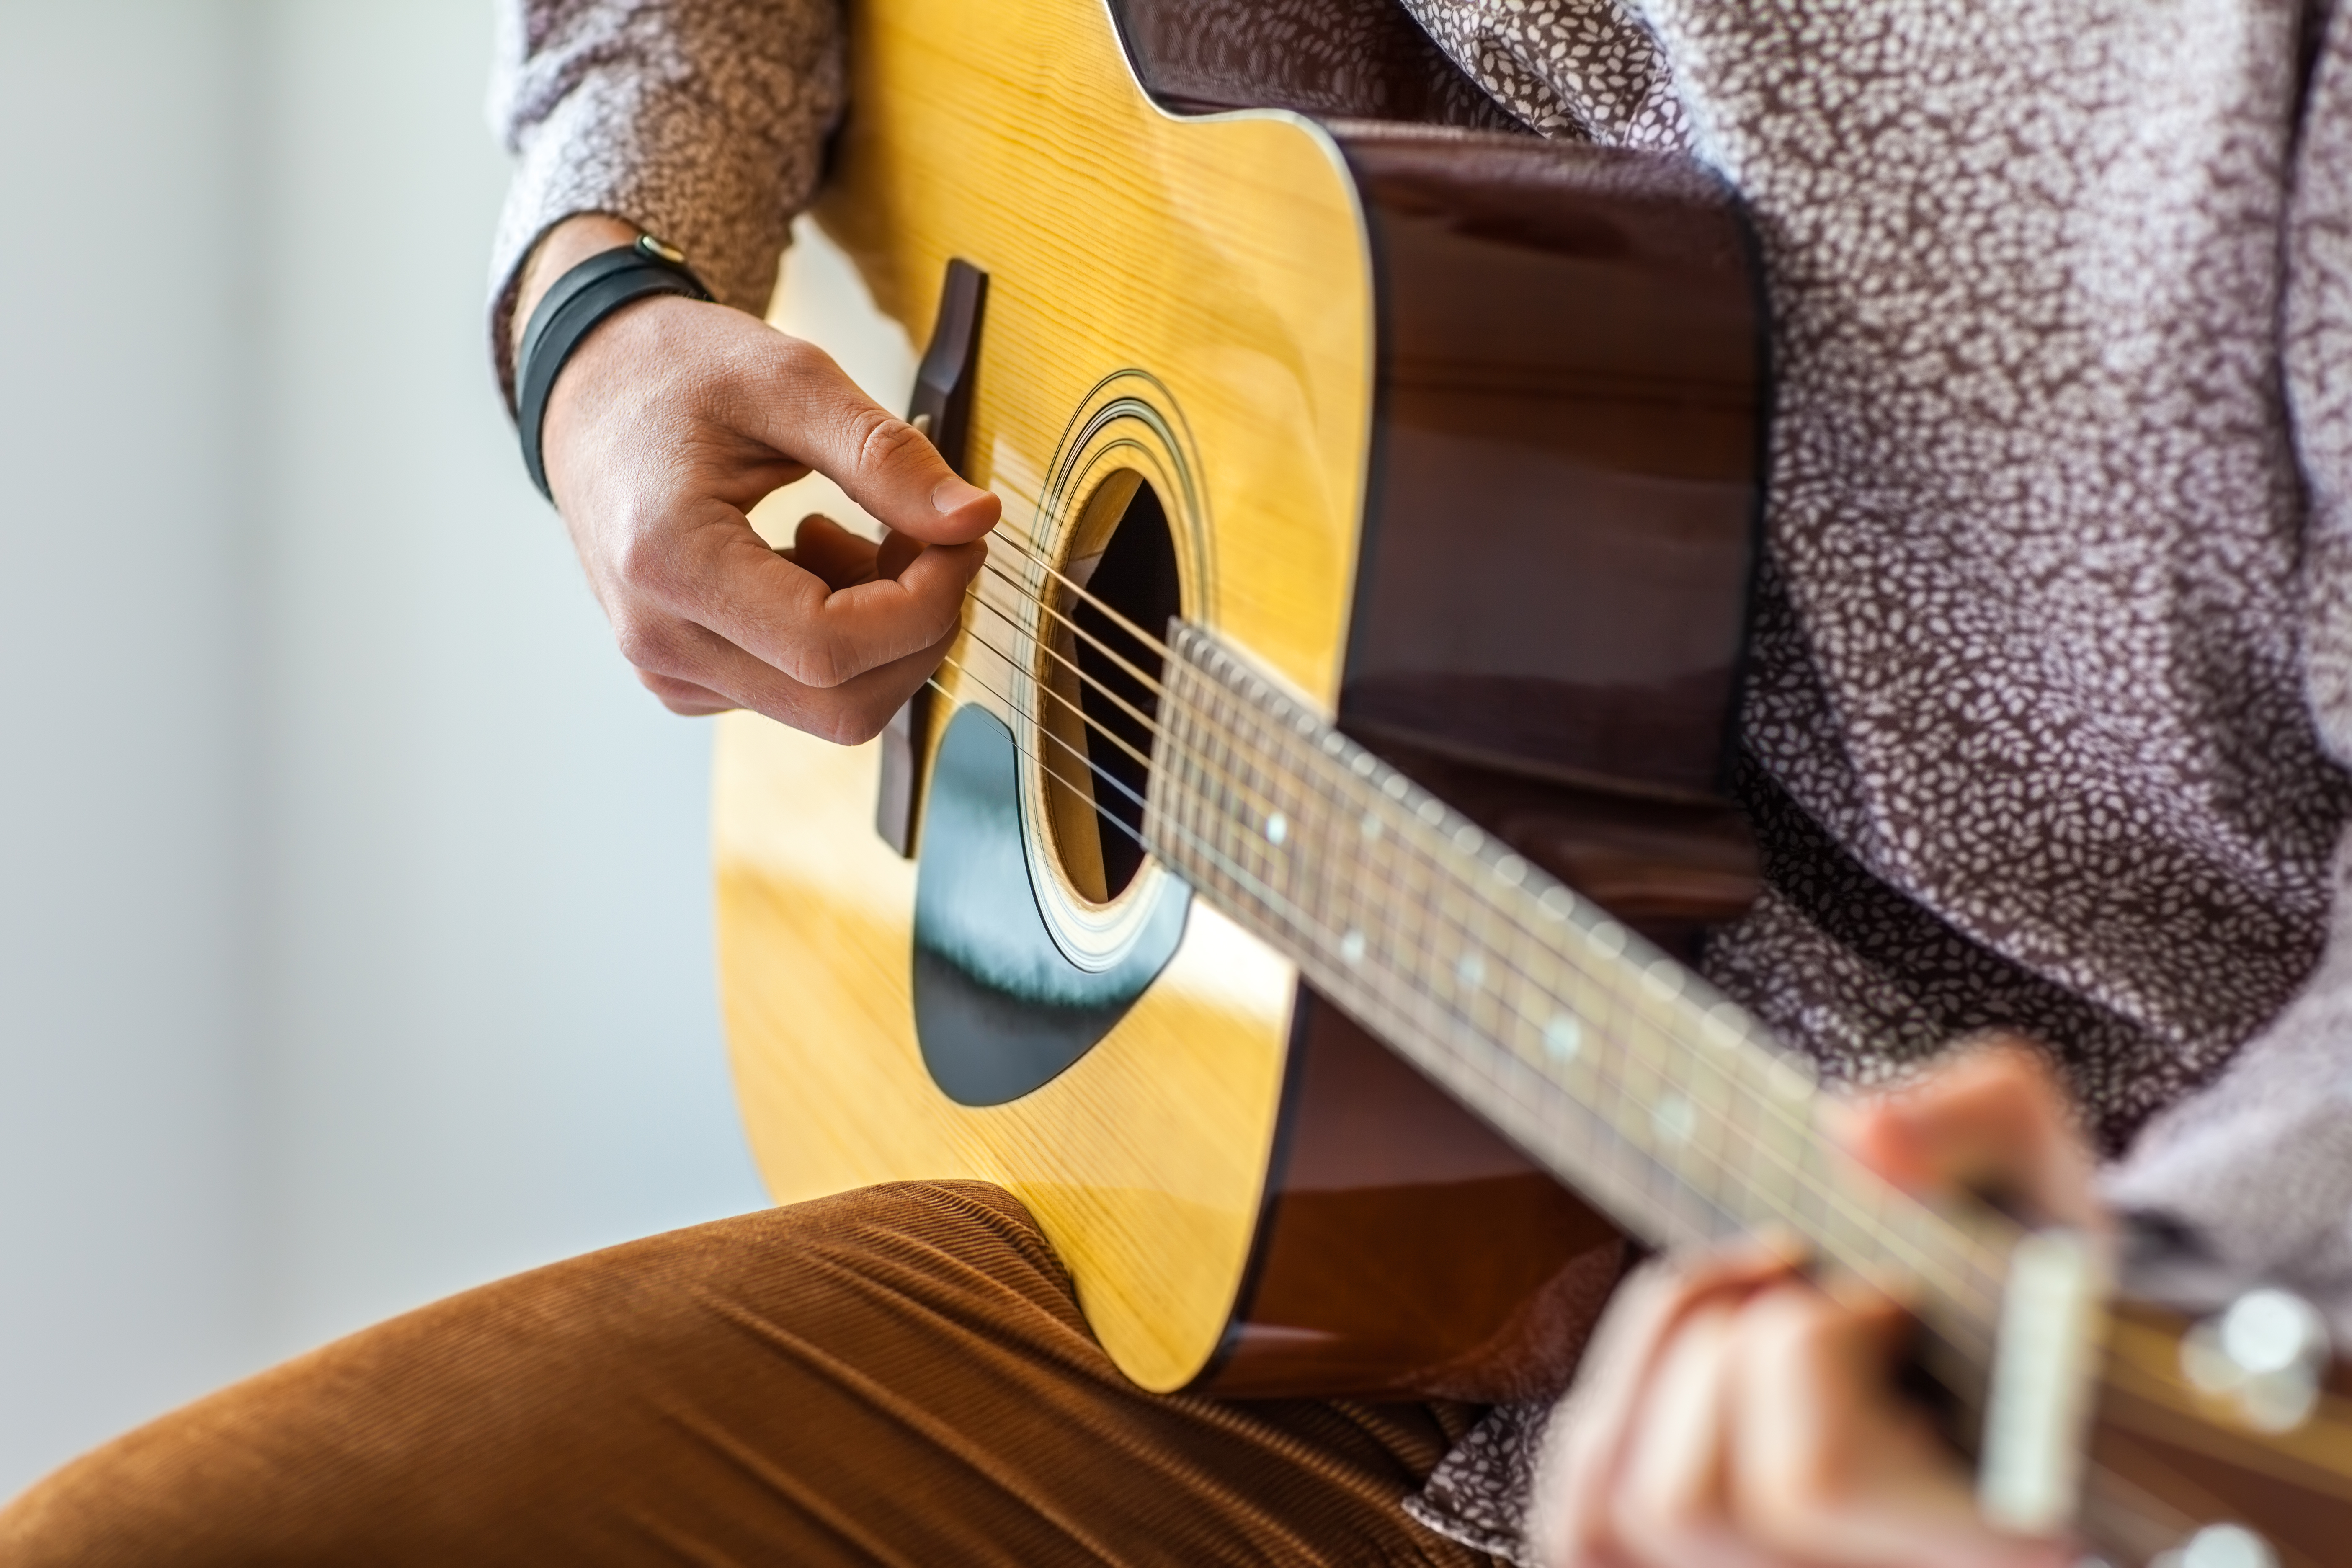 These Acoustic Guitars Are Affordable, So You Won't Be Afraid To Take Them Everywhere You Go